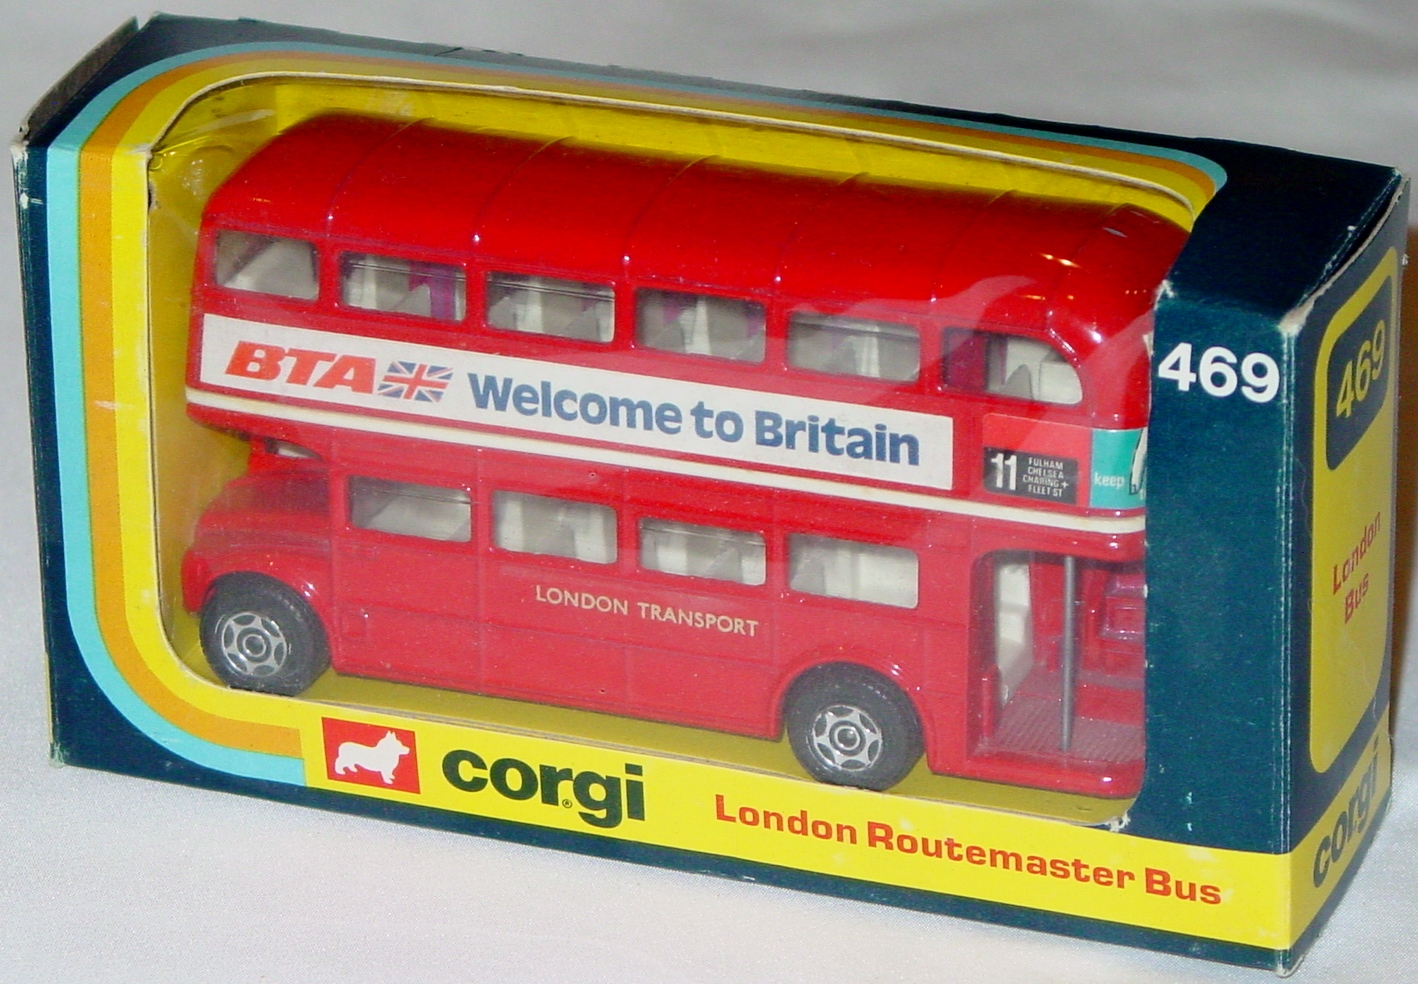 Corgi 469 - Routemaster Bus Welcome to Britain